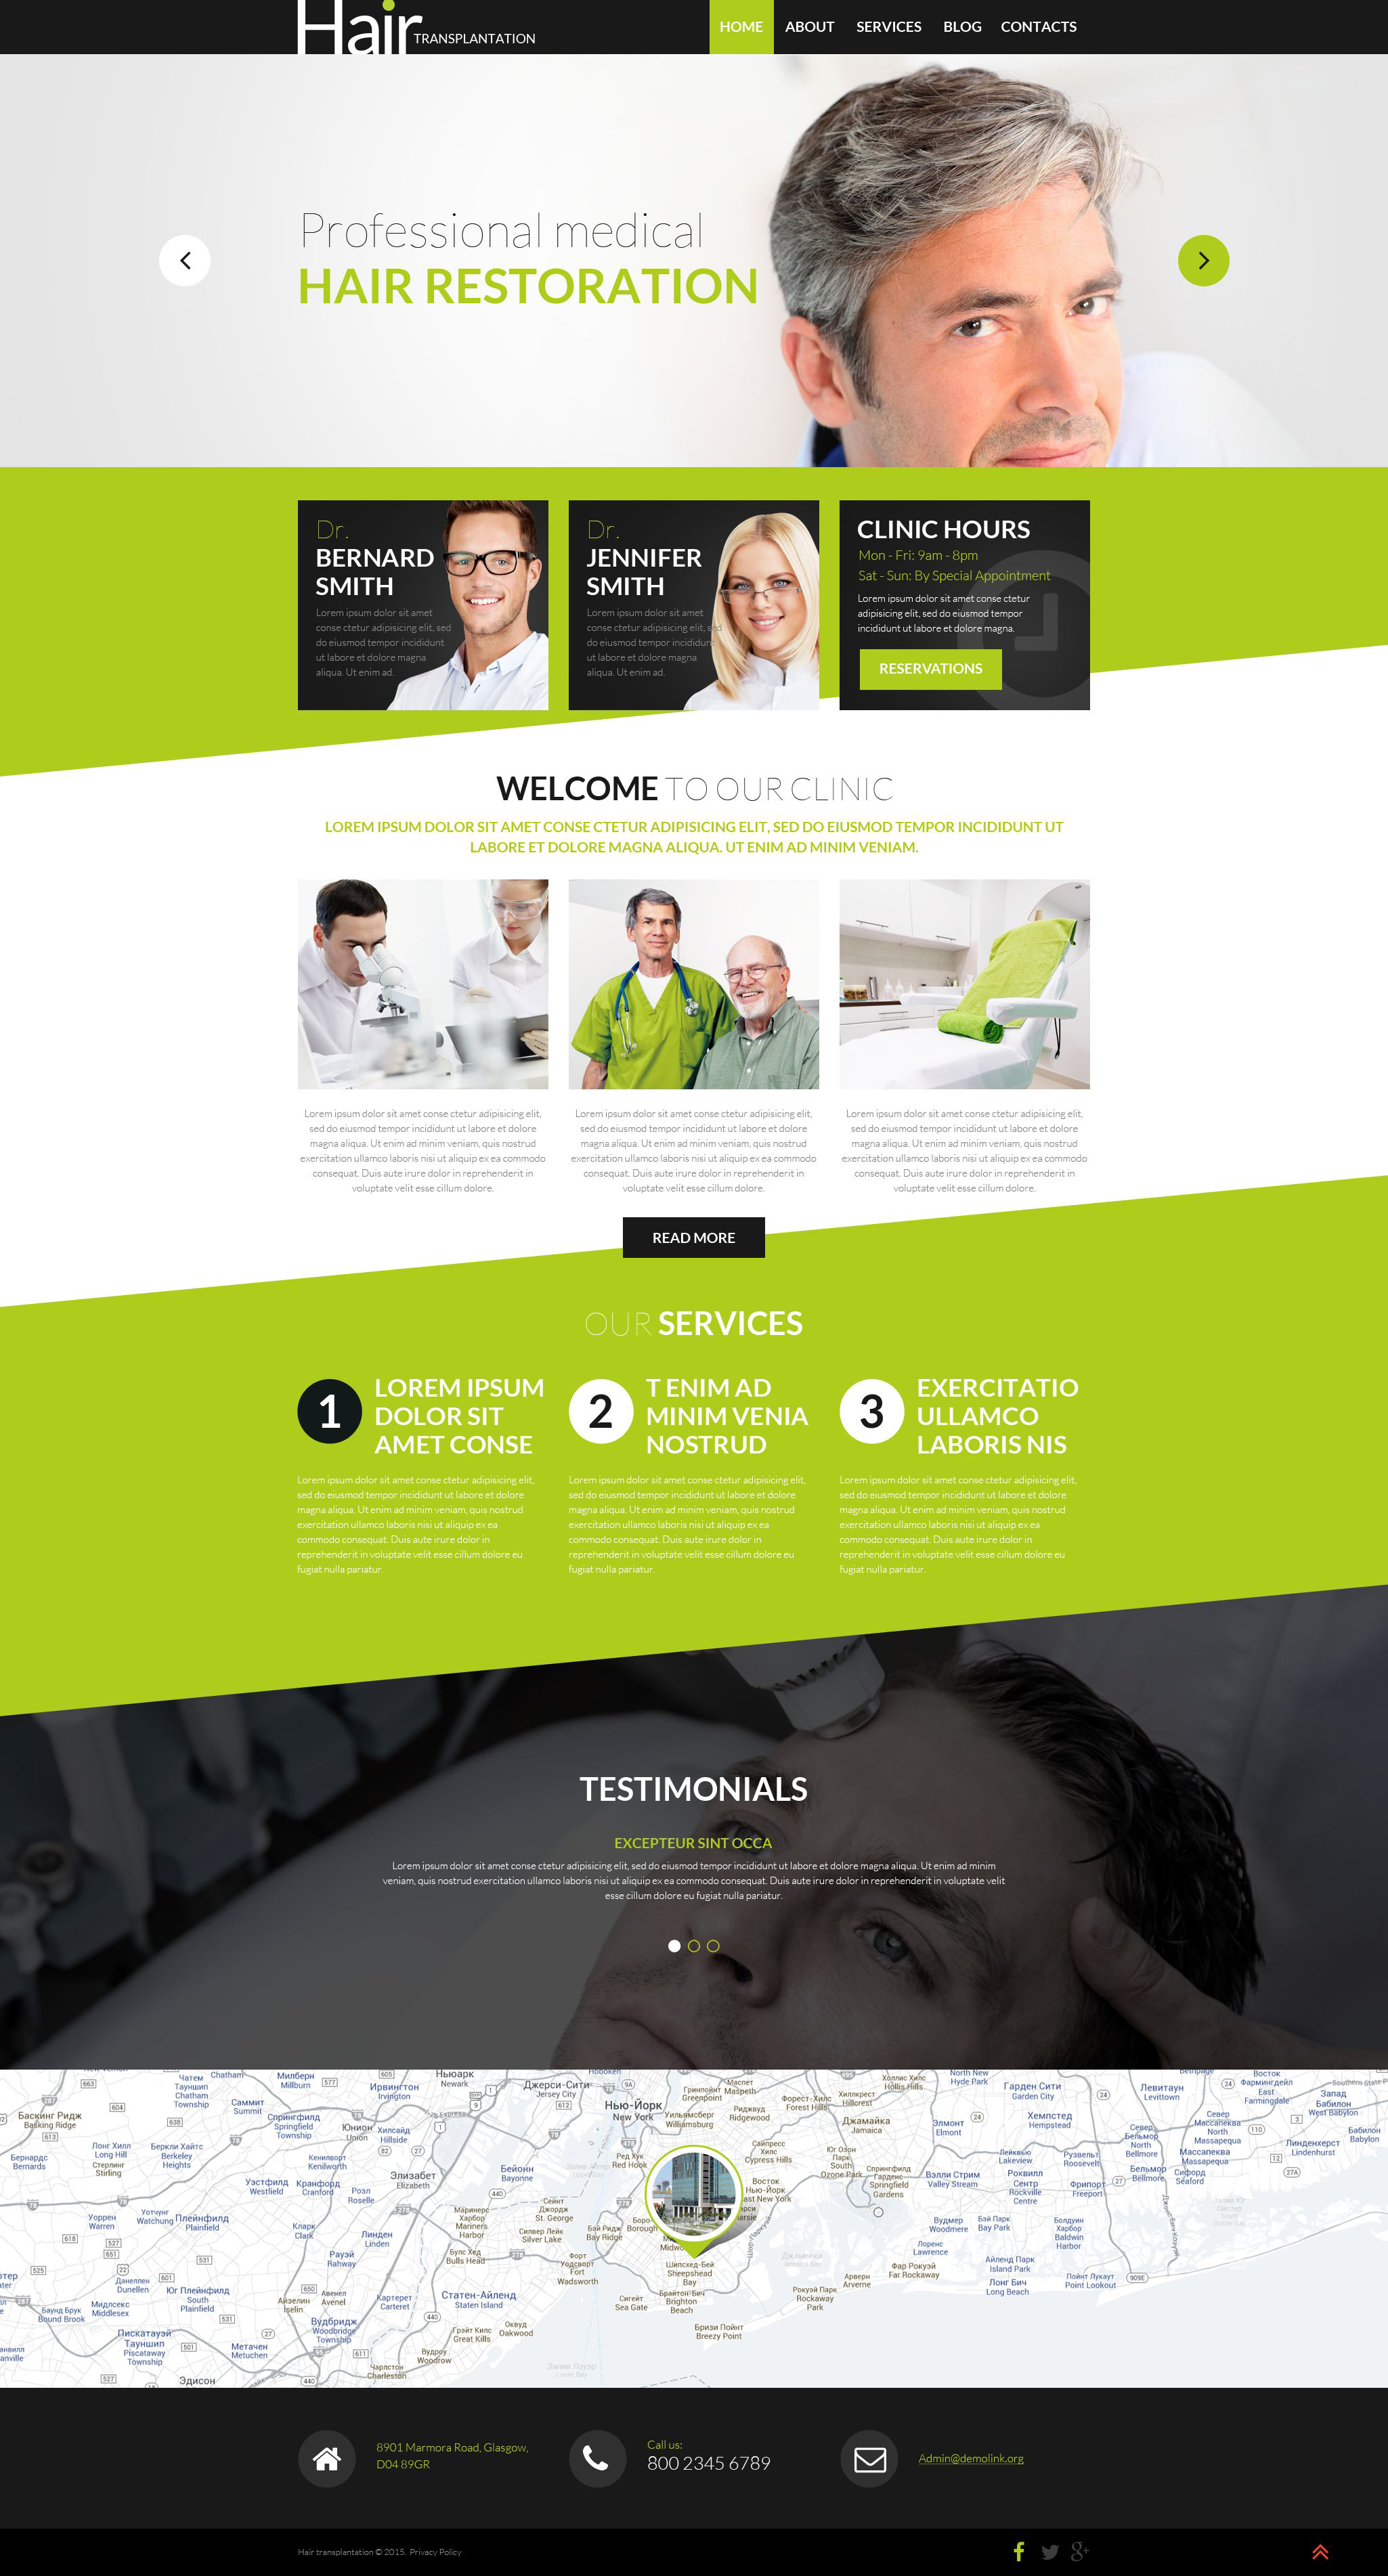 The Hair Transplant Hair WordPress Design 53016, one of the best WordPress themes of its kind (medical, most popular), also known as Hair Transplant hair WordPress template, trans WordPress template, restoration WordPress template, transplantation WordPress template, medicine clinic WordPress template, loss WordPress template, therapy WordPress template, surgical WordPress template, treatment WordPress template, methods WordPress template, technology and related with Hair Transplant hair, trans, restoration, transplantation, medicine clinic, loss, therapy, surgical, treatment, methods, technology, etc.